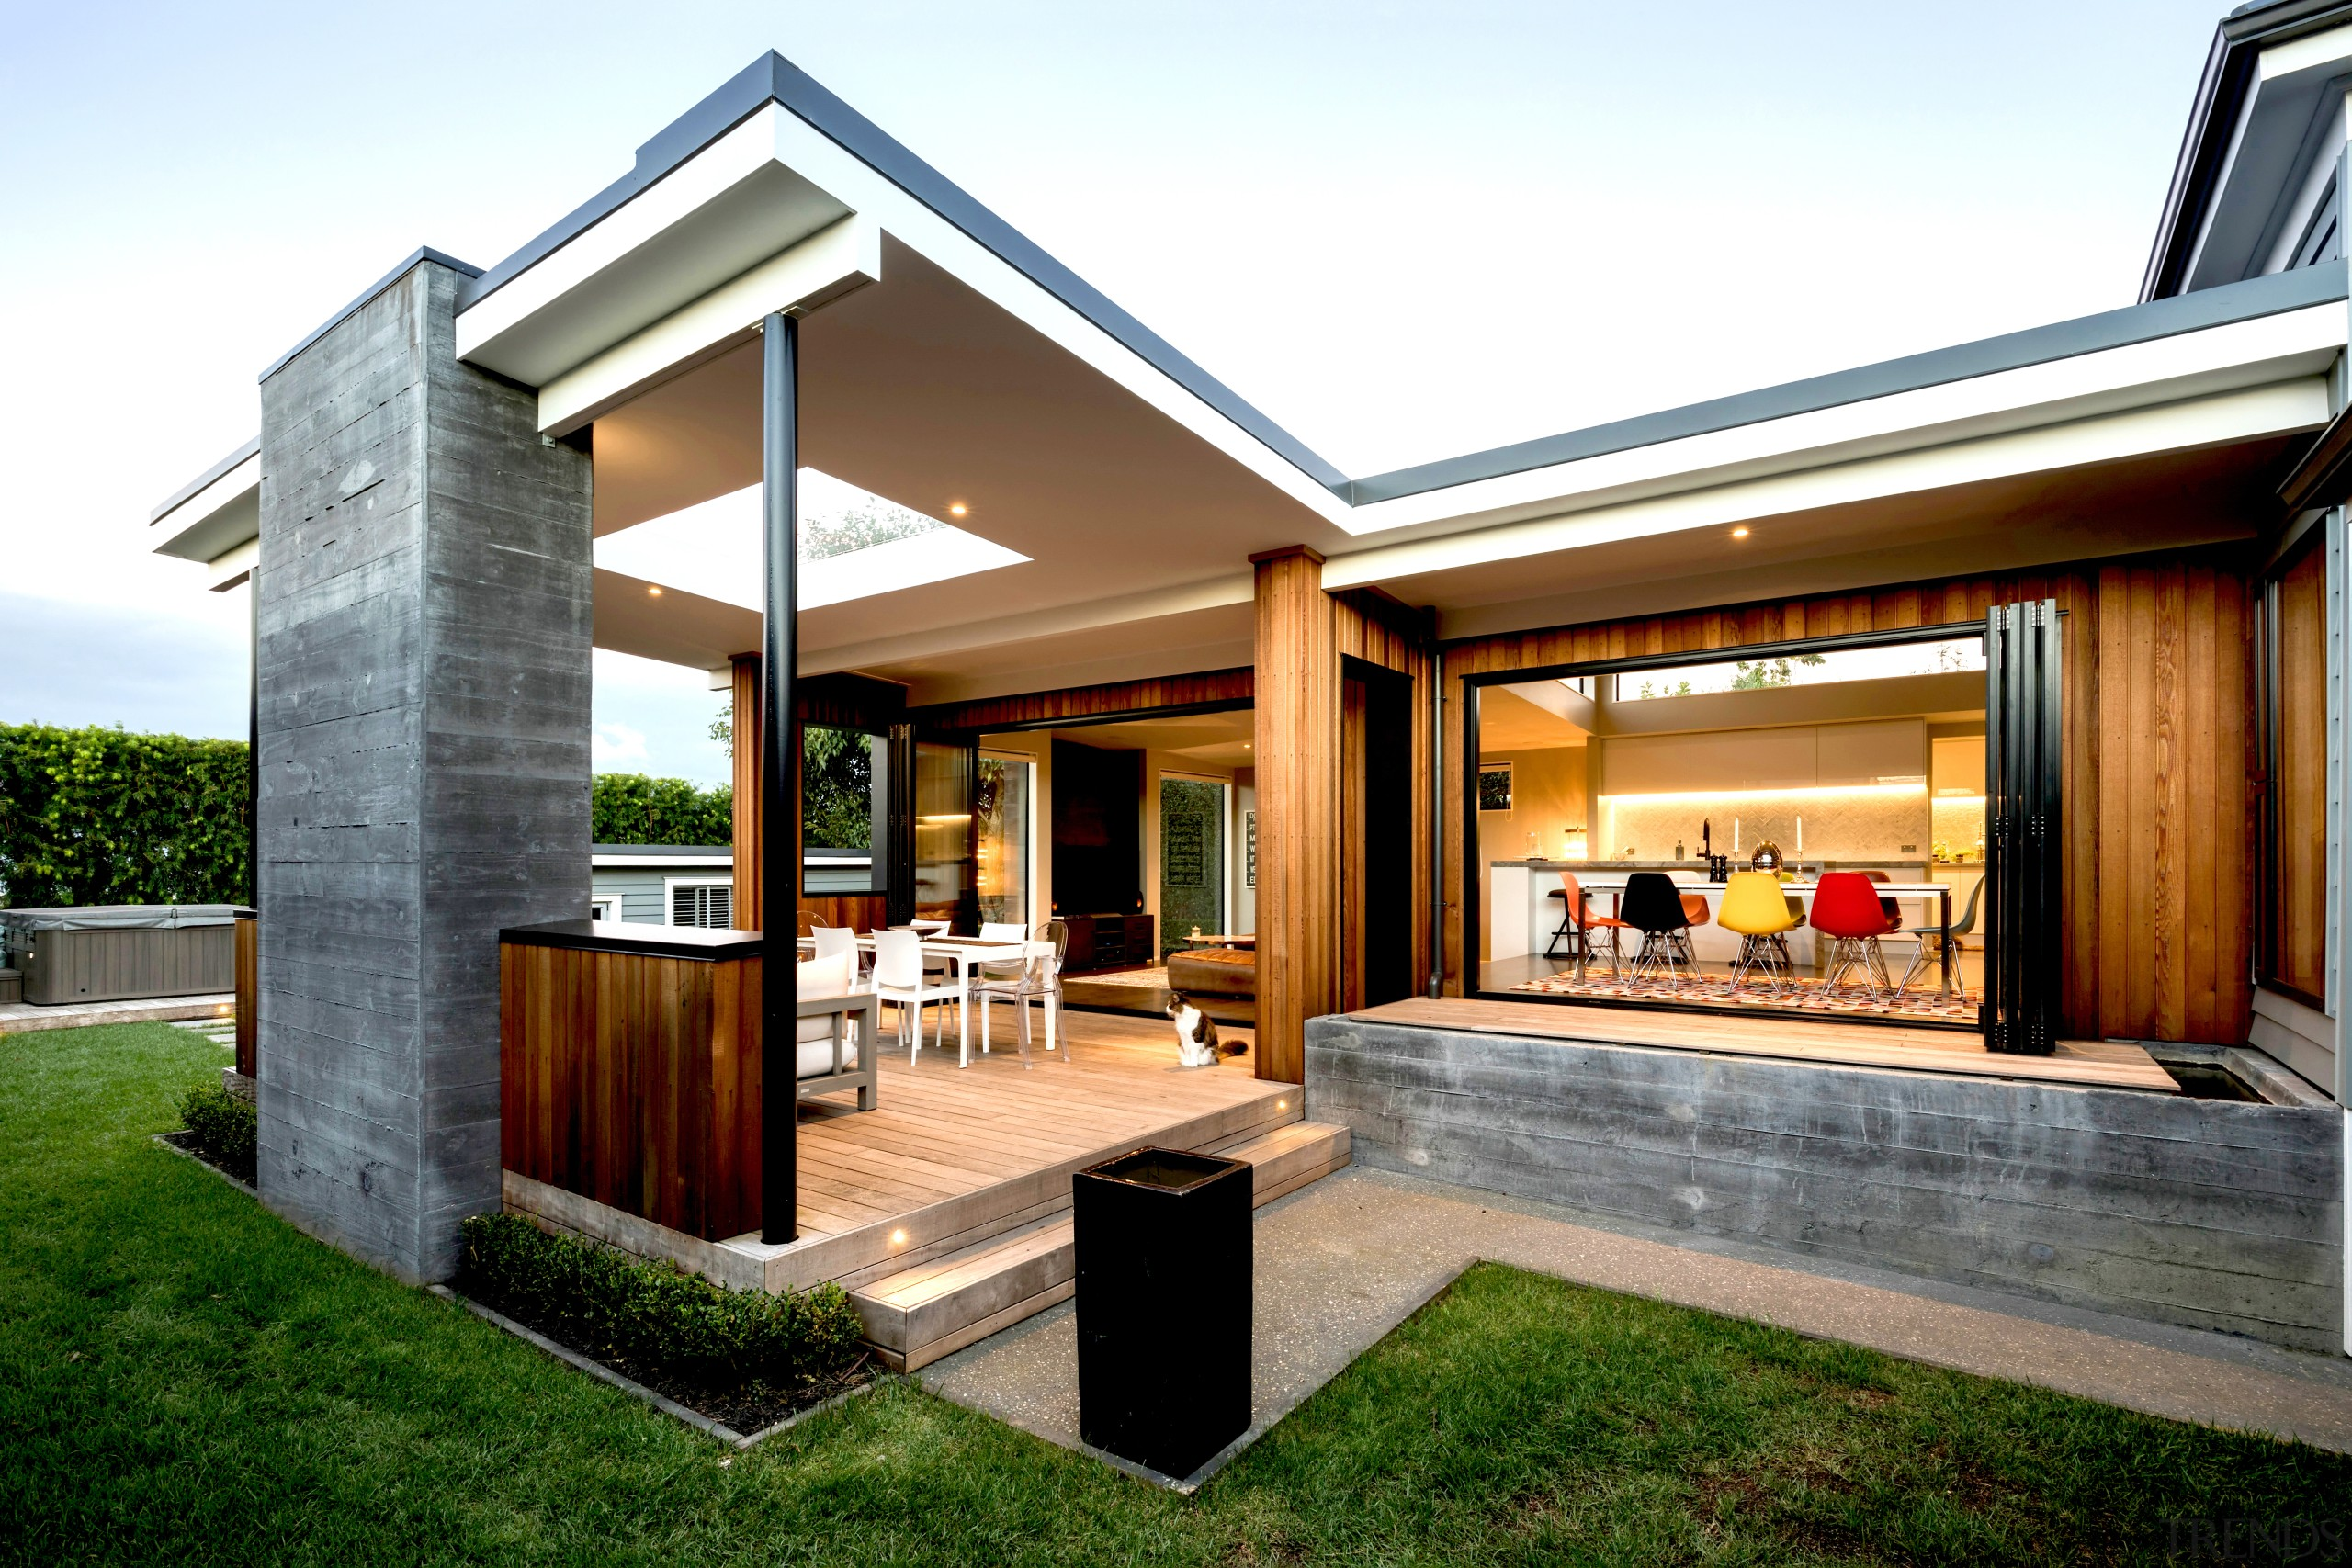 For this renovation, materials were chosen to contrast architecture, backyard, building, courtyard, design, estate, facade, grass, home, house, interior design, patio, property, real estate, residential area, roof, siding, white